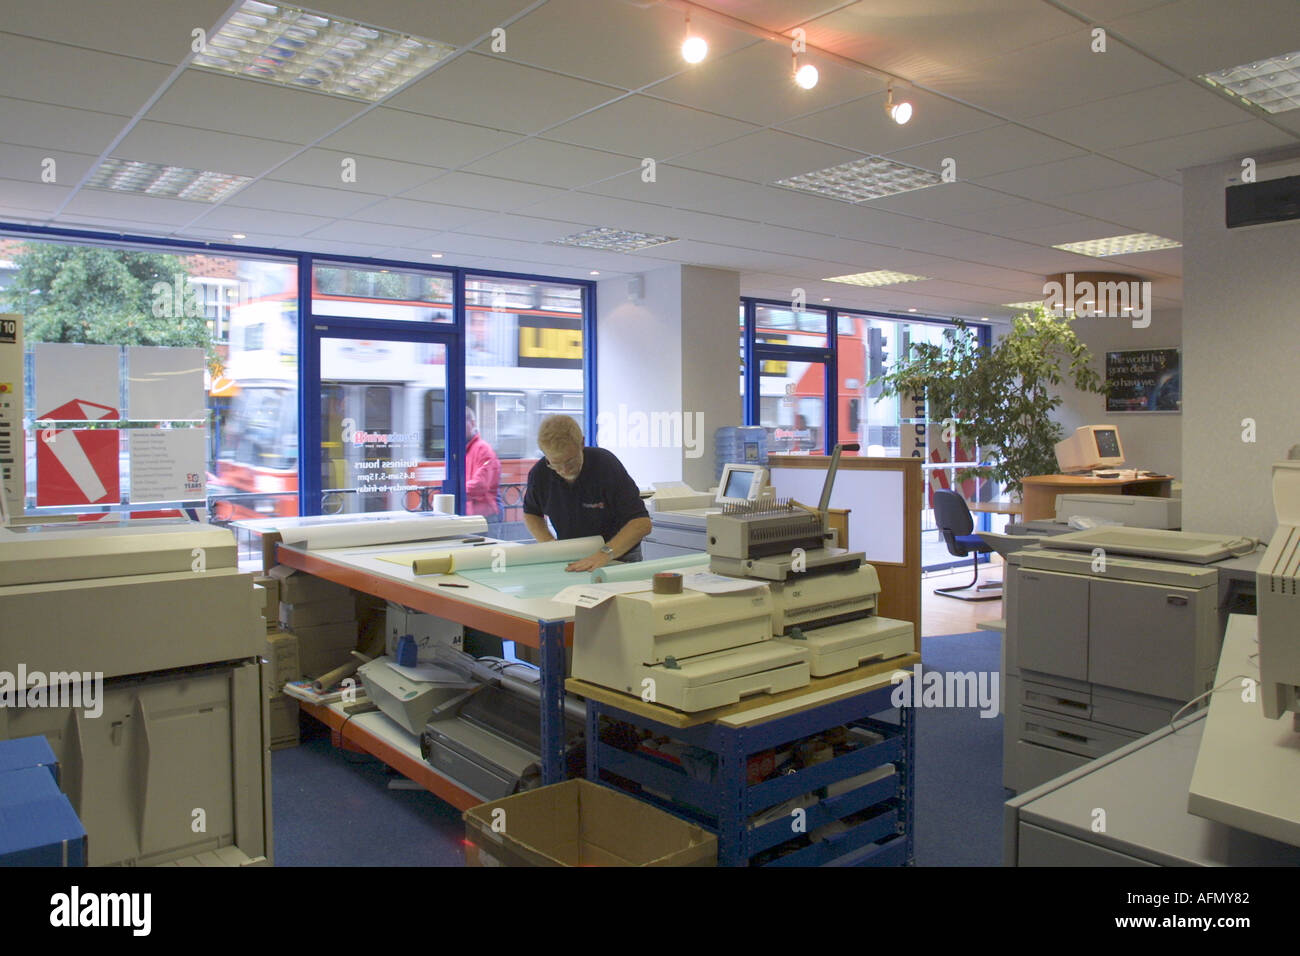 High street printing and repro shop - Stock Image